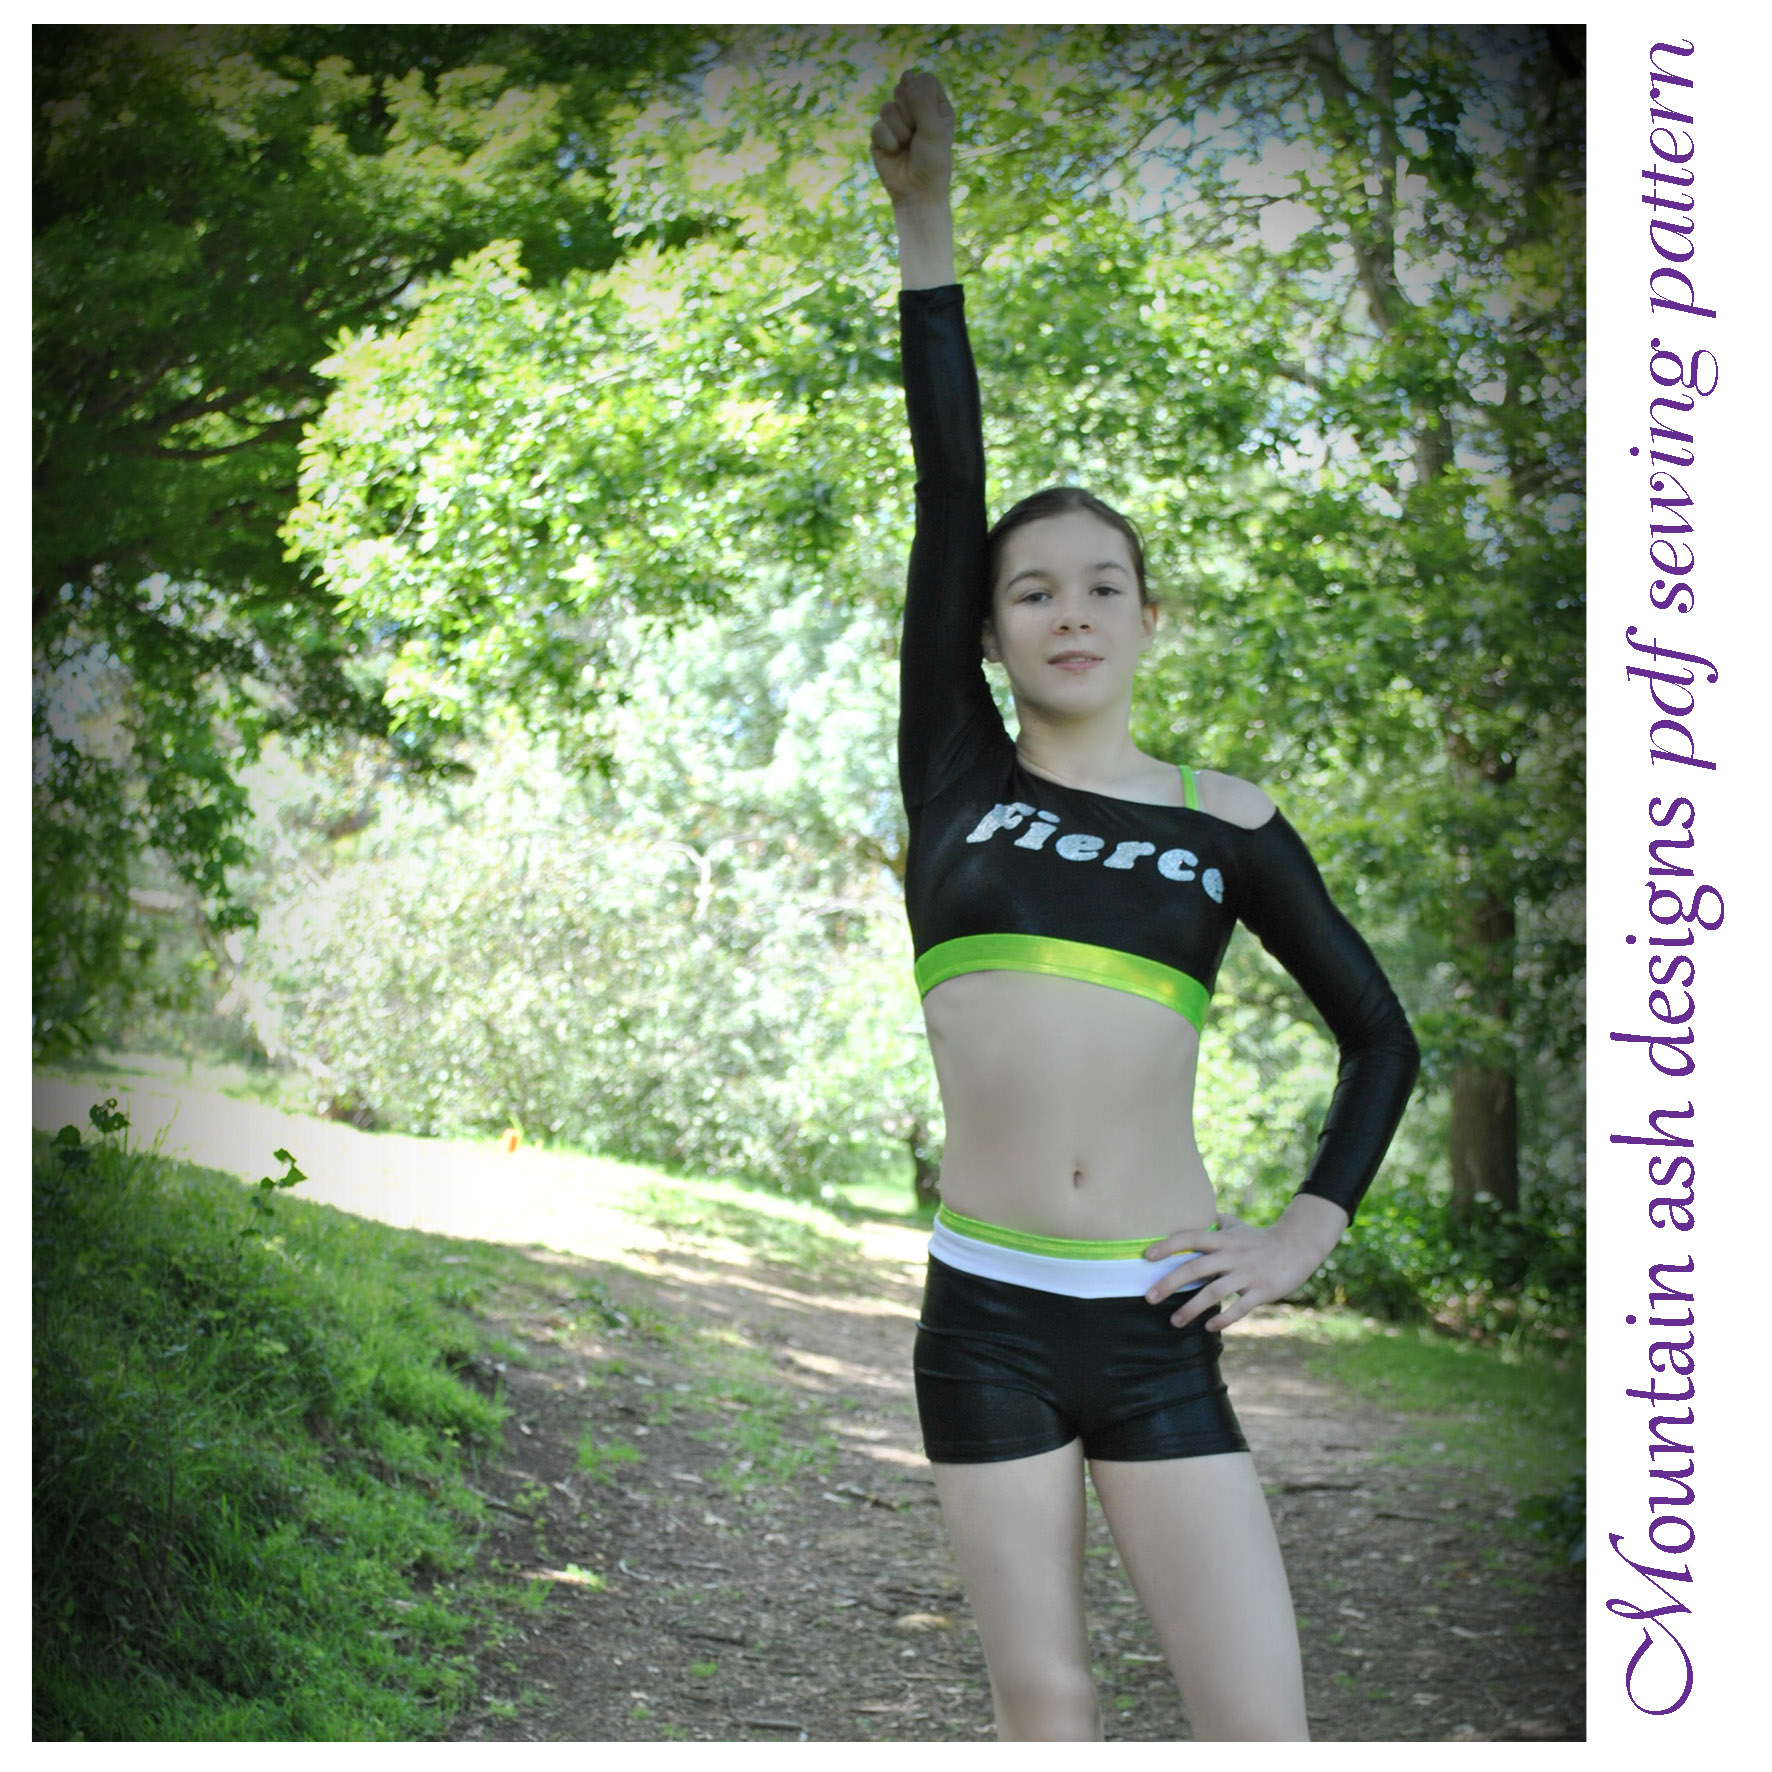 Cheer 5 Cheerleading Unifrom Tops in Girls Sizes 2-14